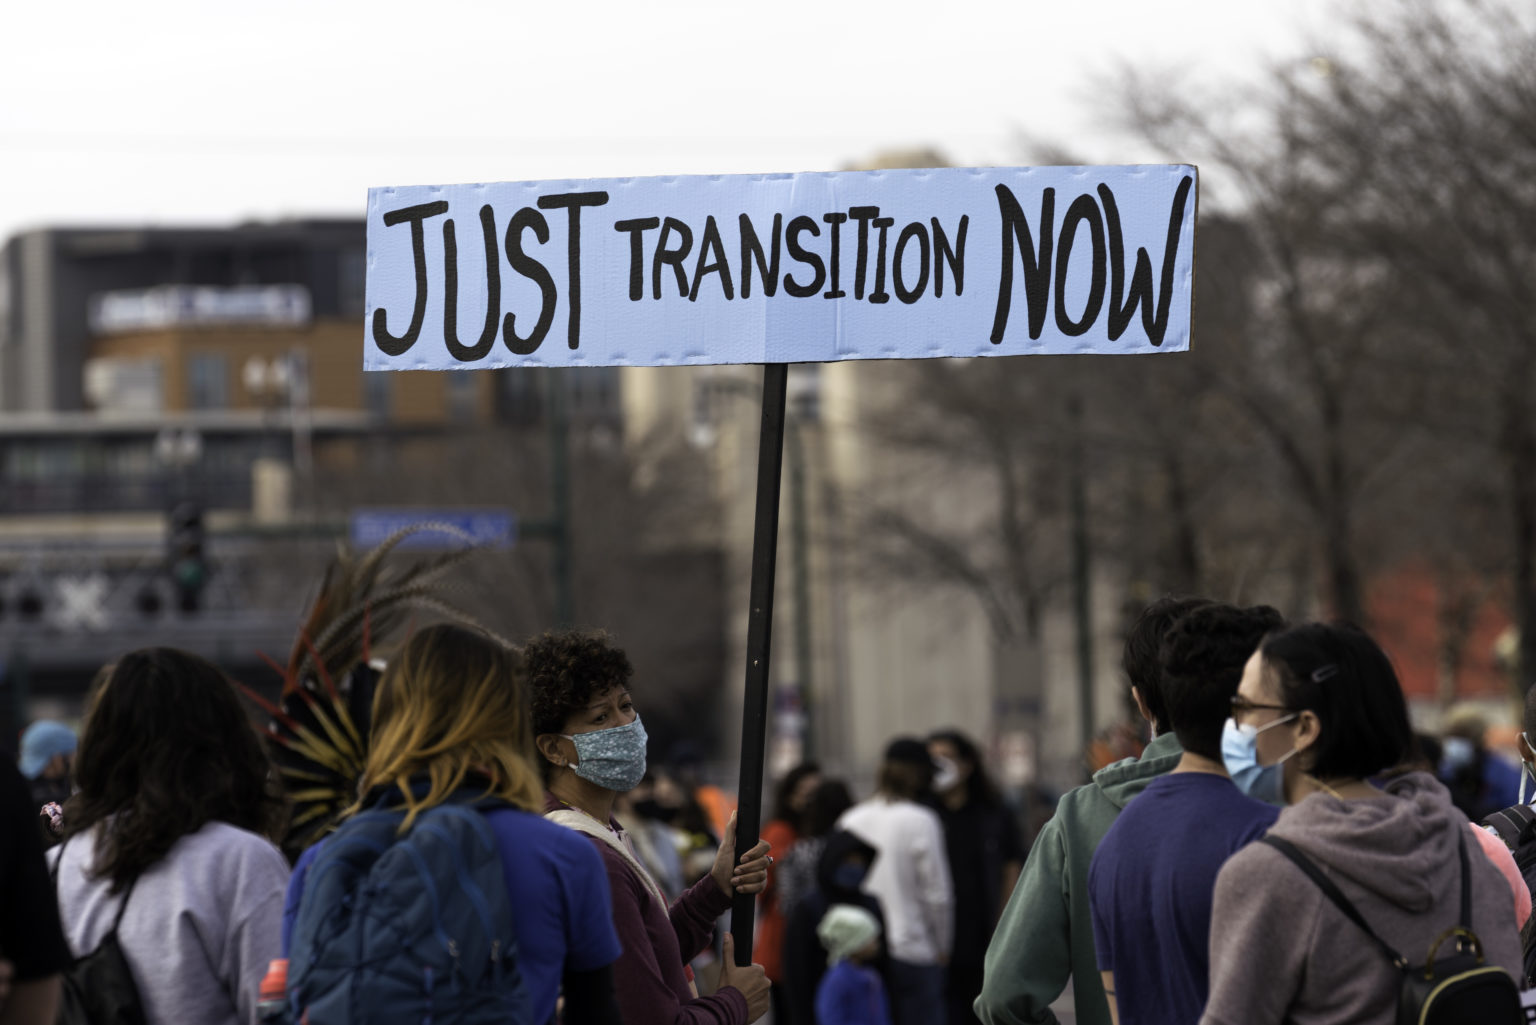 A_woman_holds_a_Just_Transition_Now_sign_at_a_rally_in_Minneapolis,_Minnesota_(50577736571)